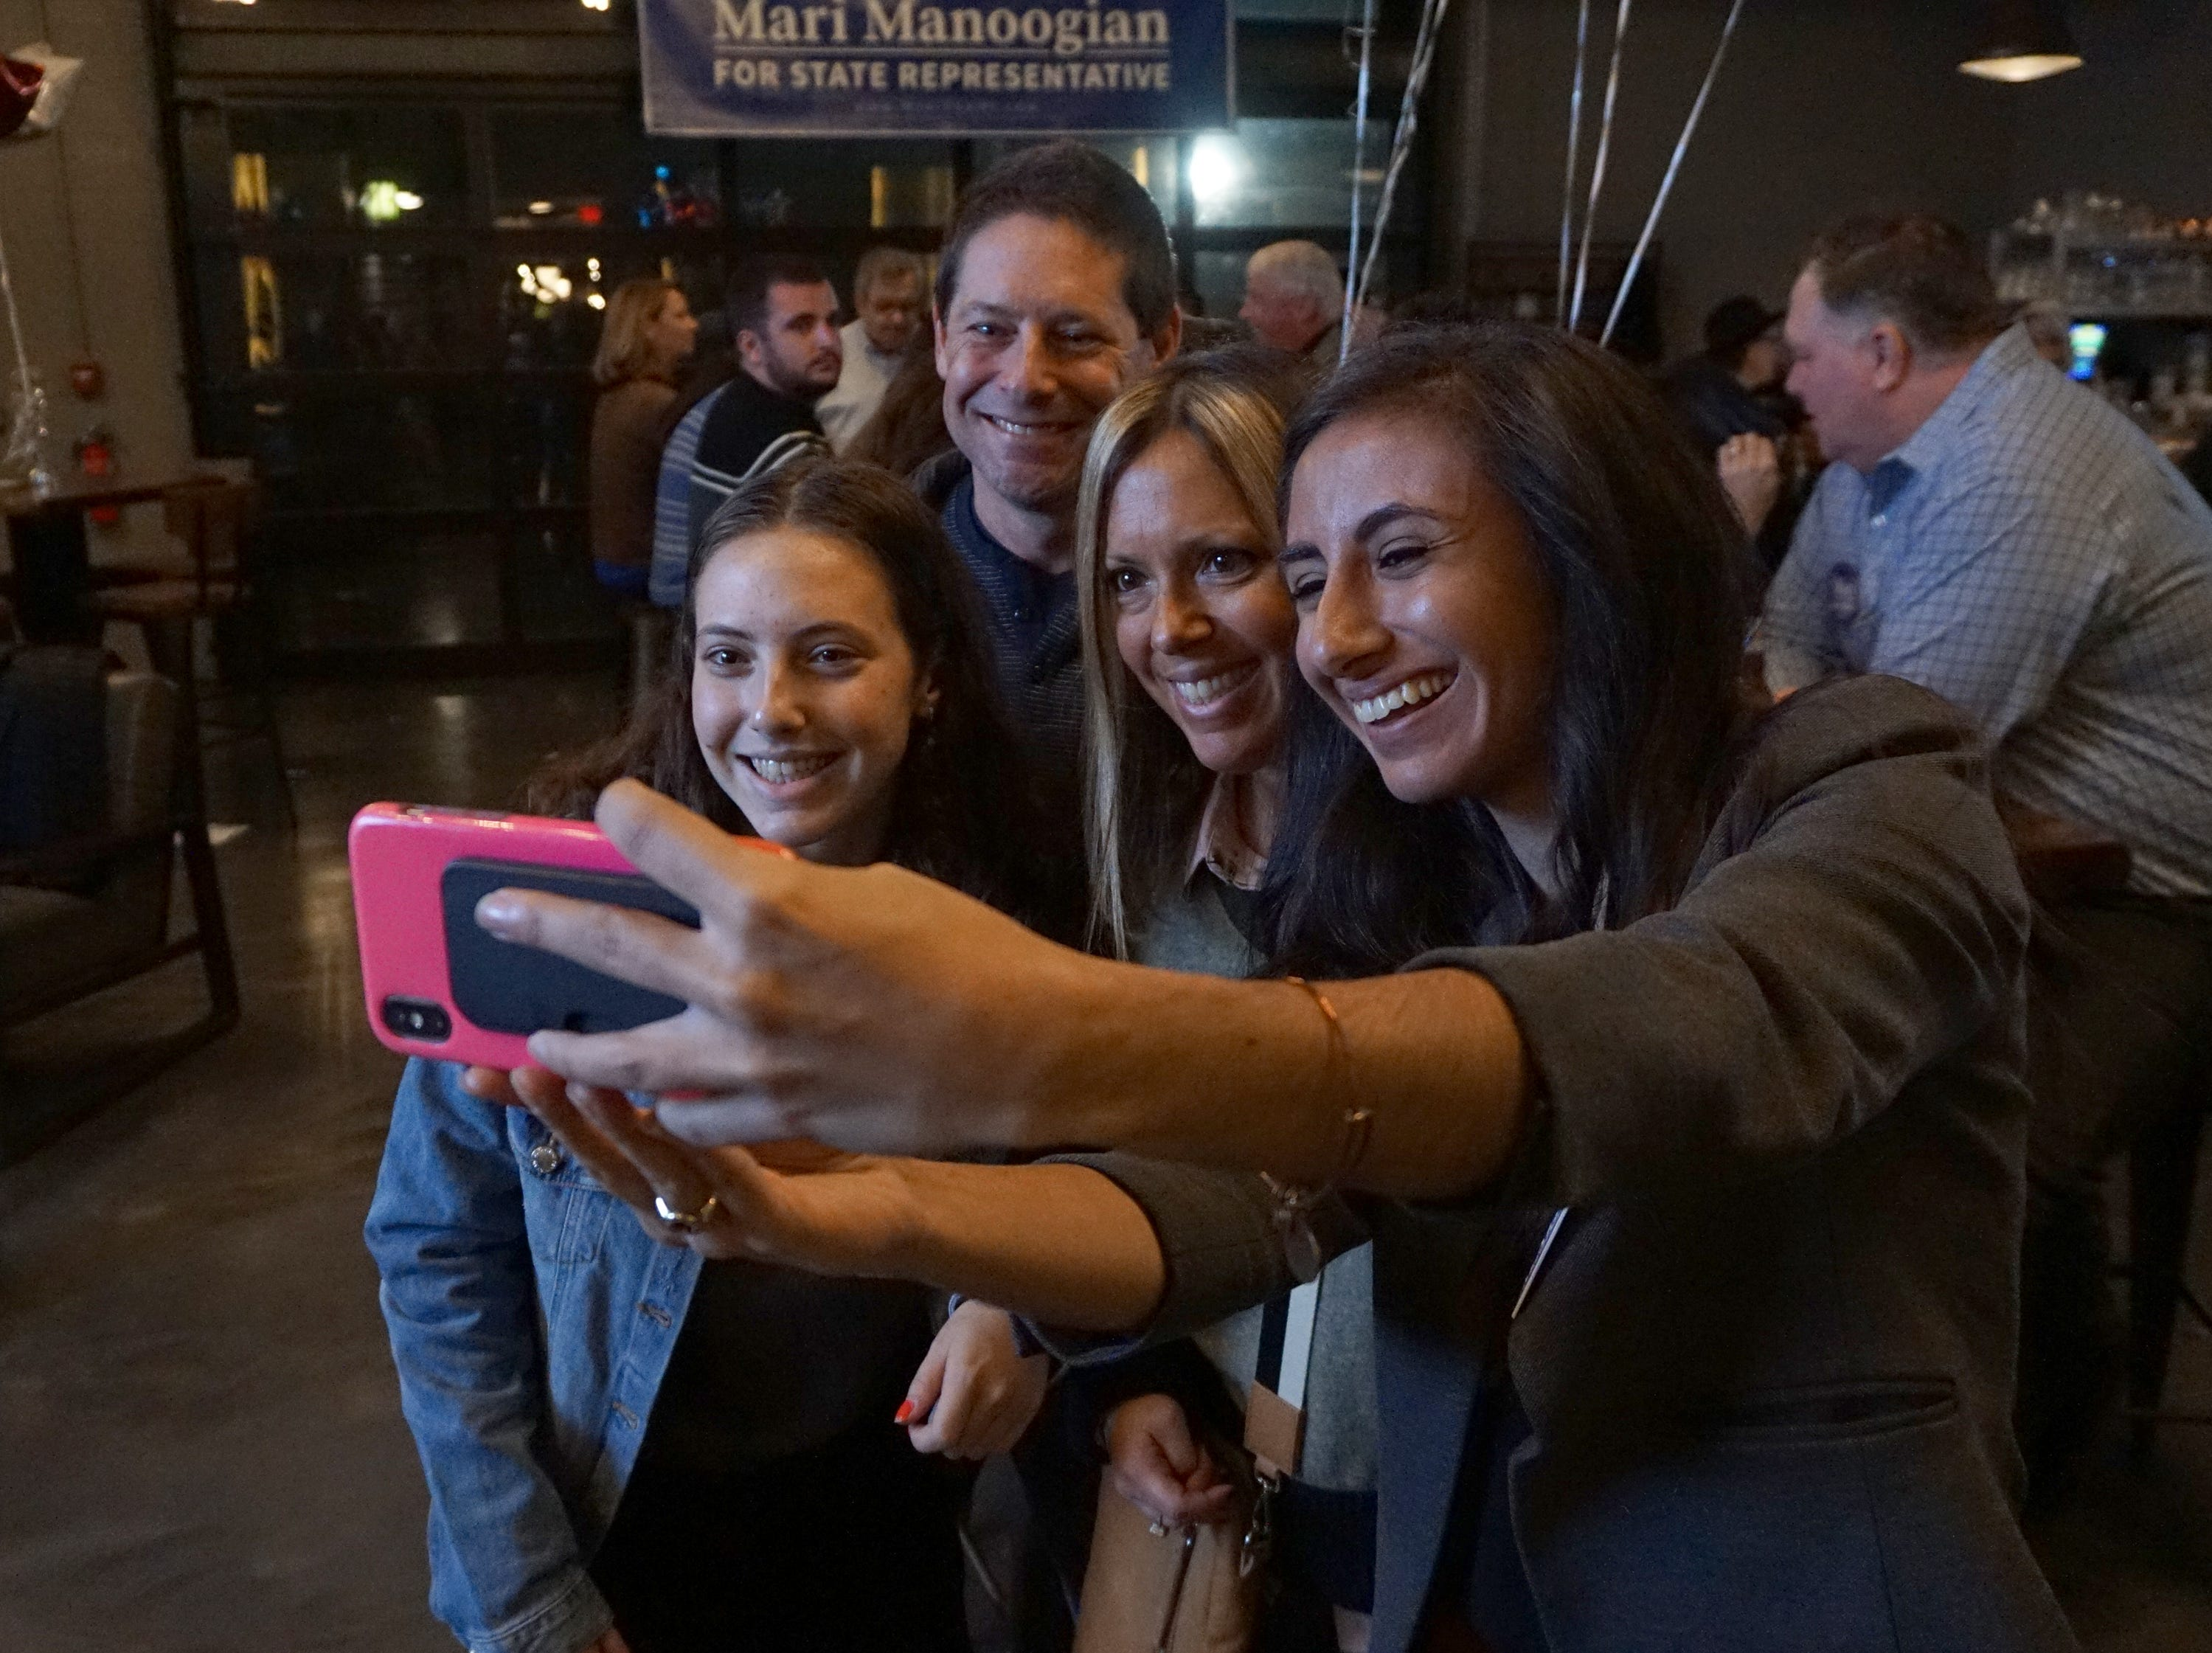 The Kroll family - Lilley (left), Todd and Jennifer take a selfie with state House District 40 candidate Mari Manoogian at Dick O'Dow's in Birmingham during election night party Nov. 6, 2018.